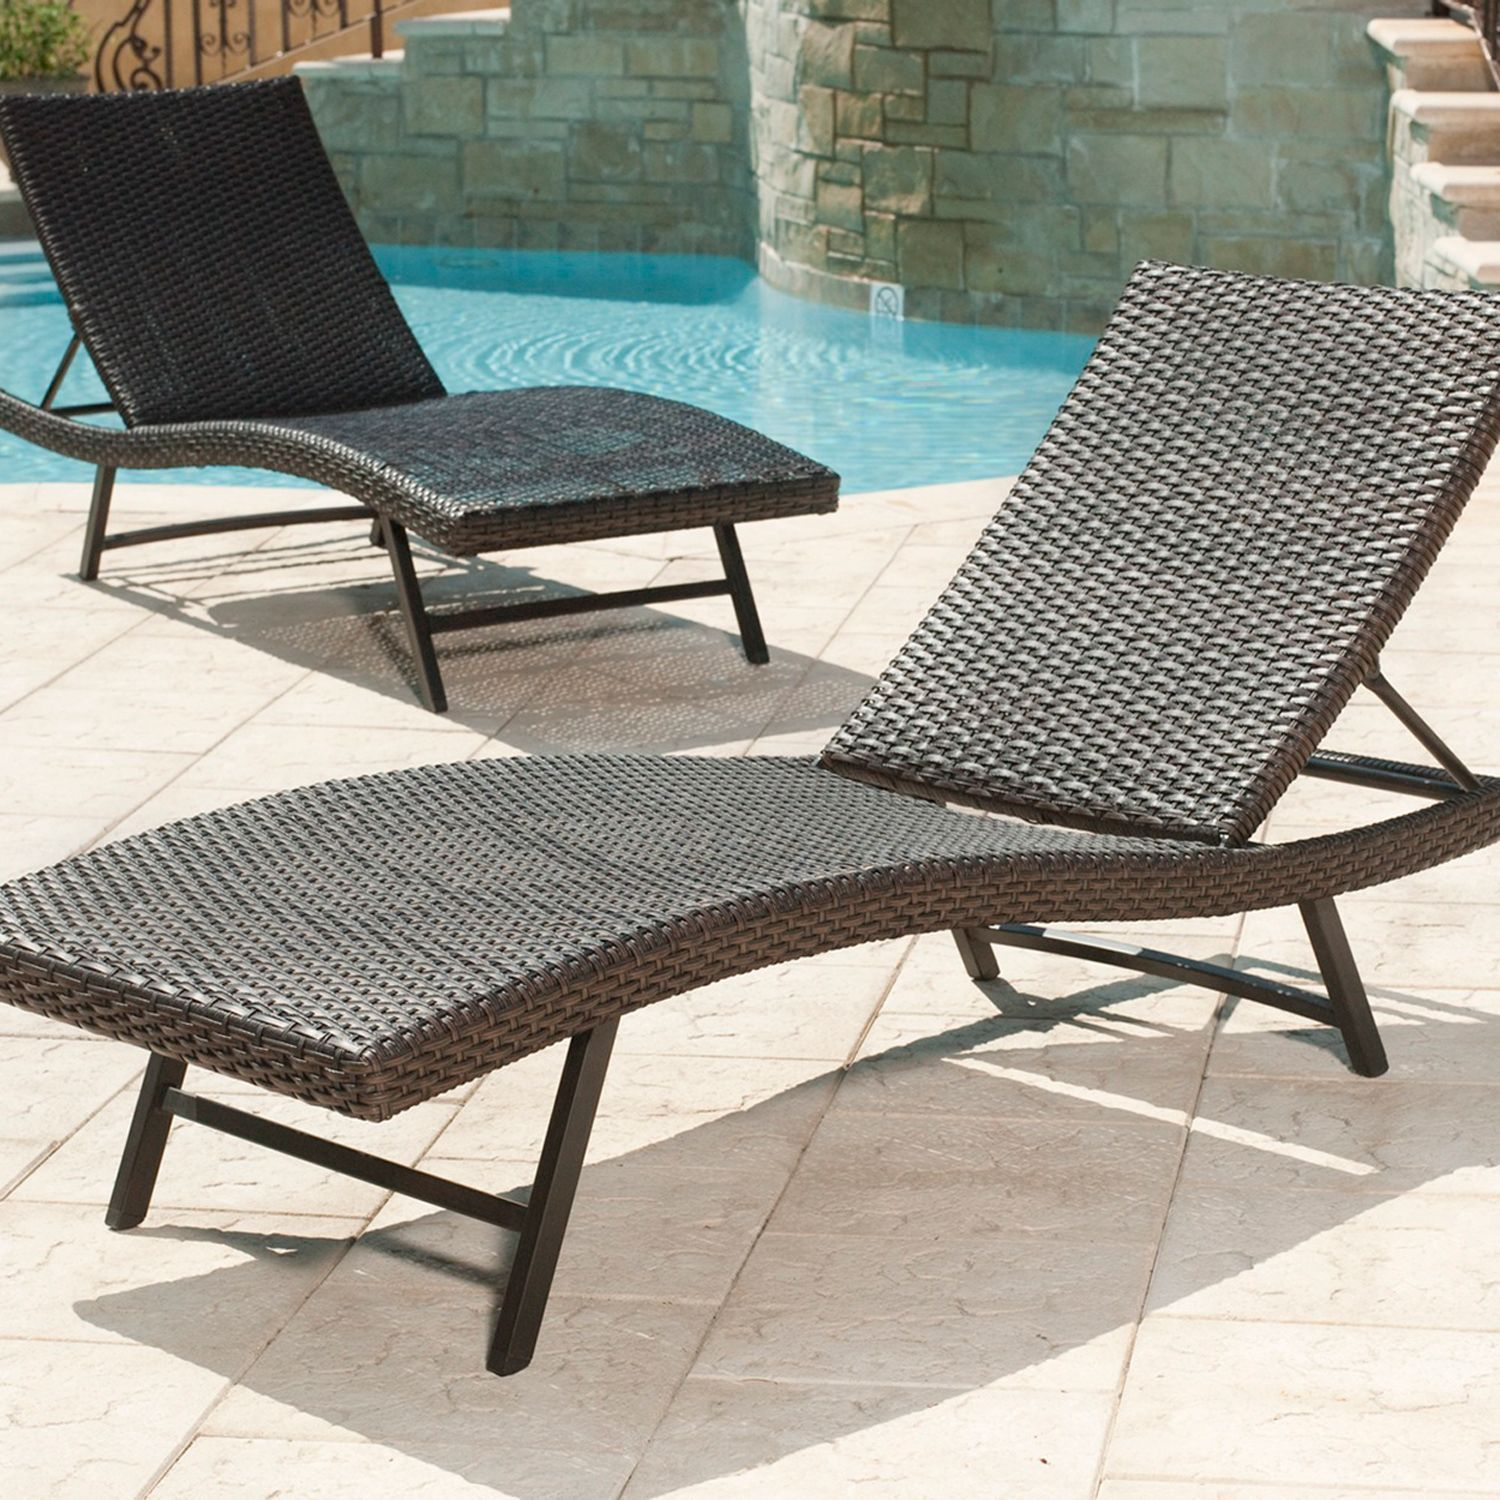 Pool Chaise Lounge Chairs Member S Mark Heritage Chaise Lounge Chair Sam S Club Patio